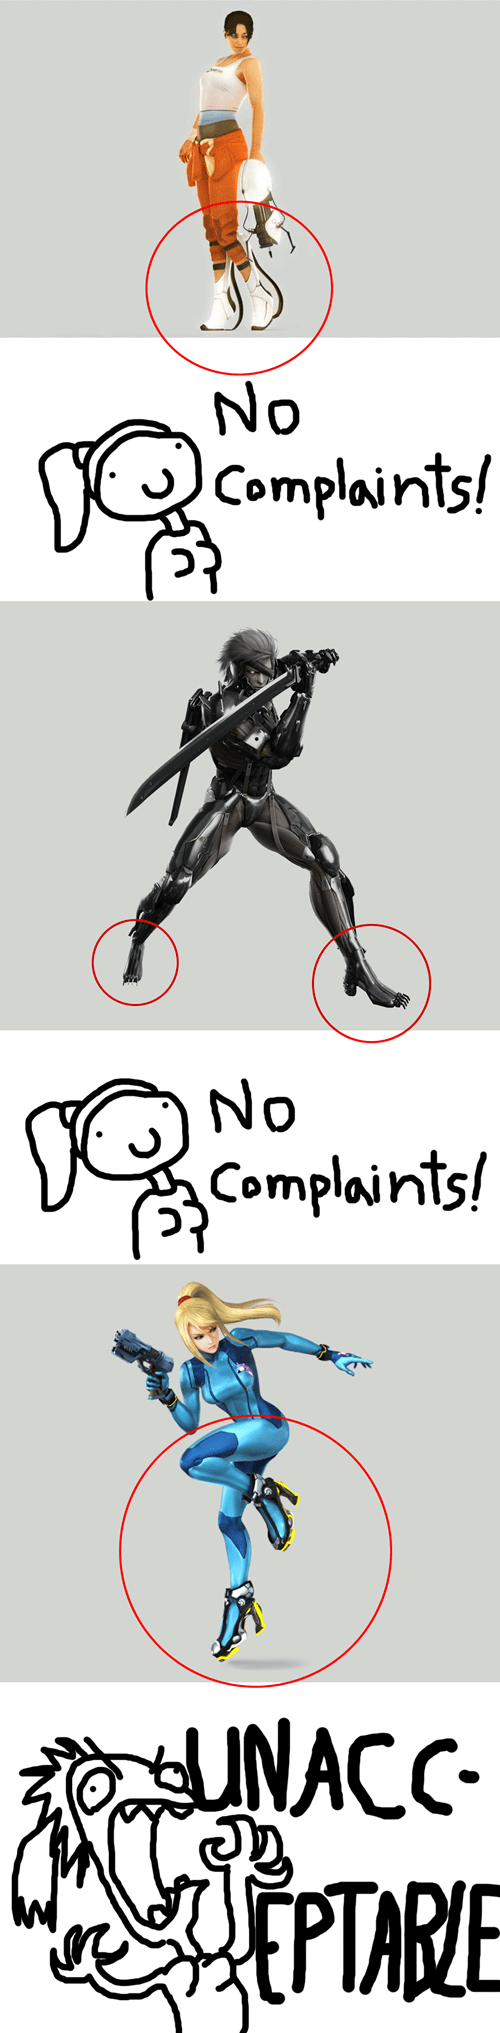 complaints,high heeled